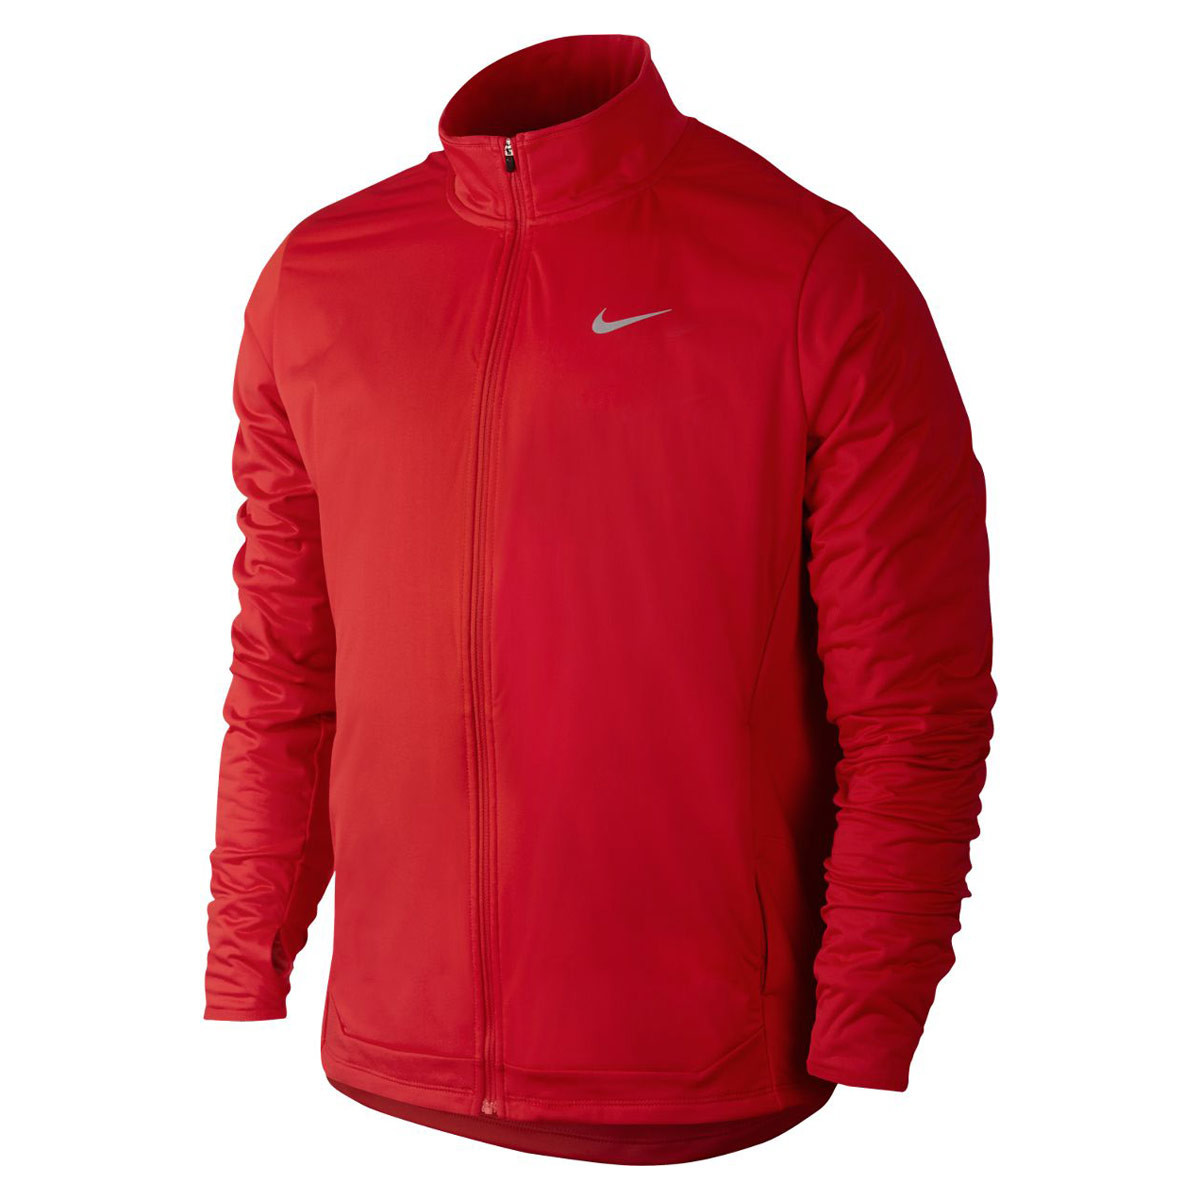 Rouge 21run Homme Jacket Shield Course Fz Vestes Nike Pour vfBwz